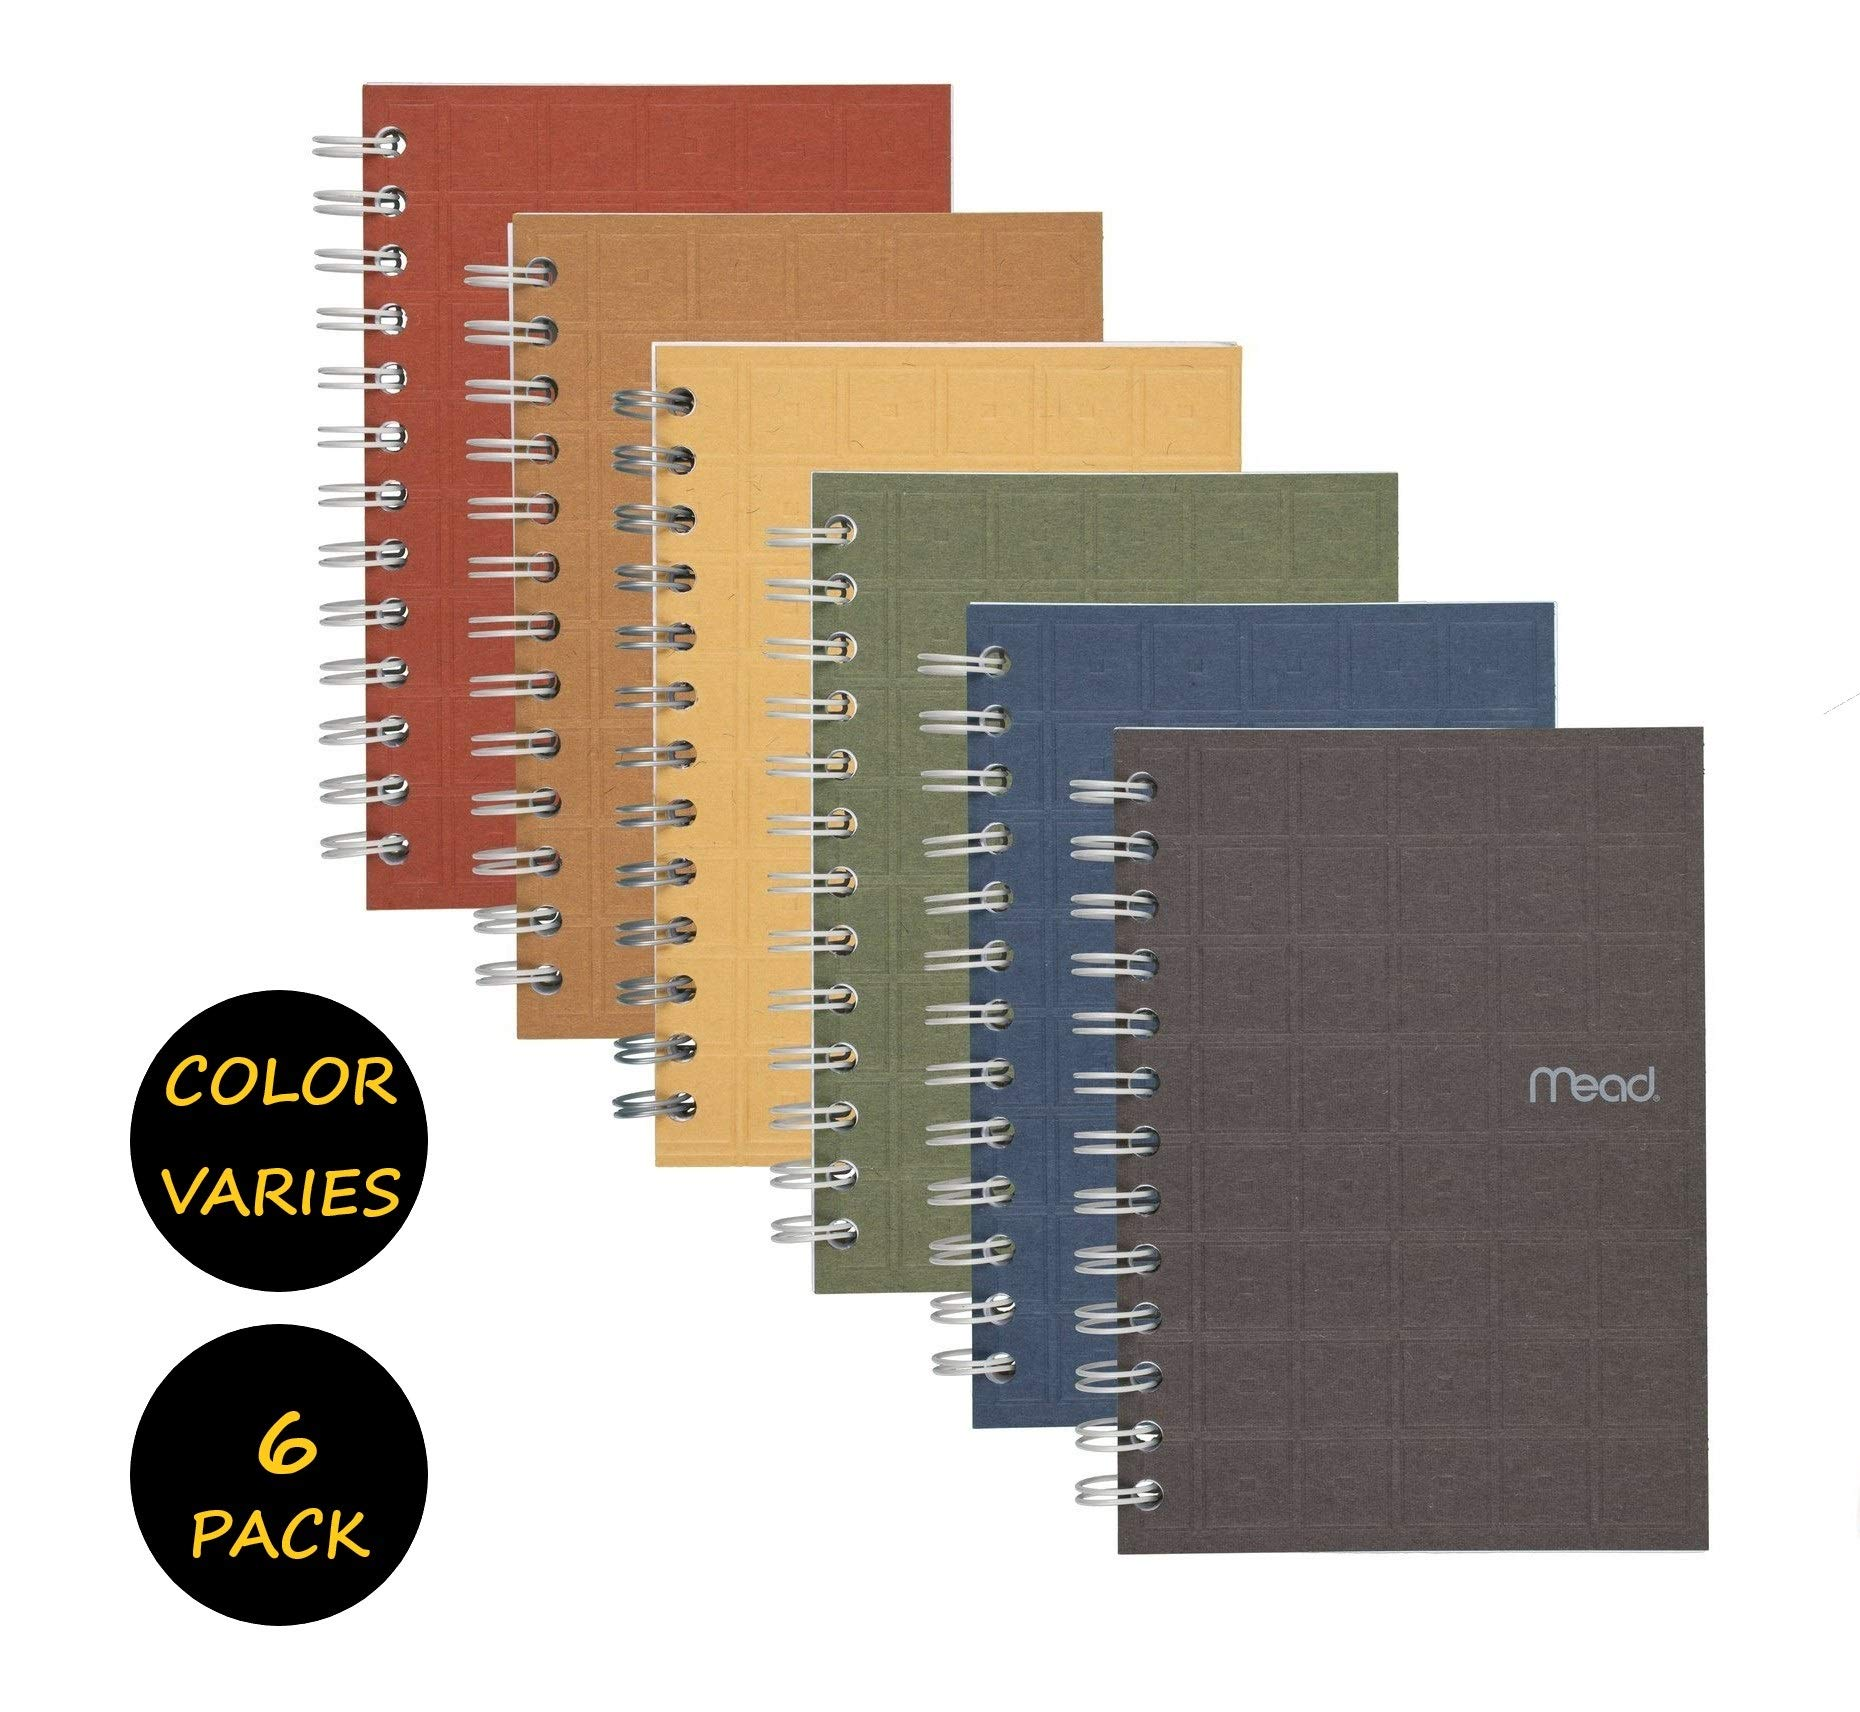 Mead Spiral Notebook, College Ruled Paper, 80 Sheets, 7'' x 5'', Recycled, Assorted Colors, 6 Pack (45186) by Mead